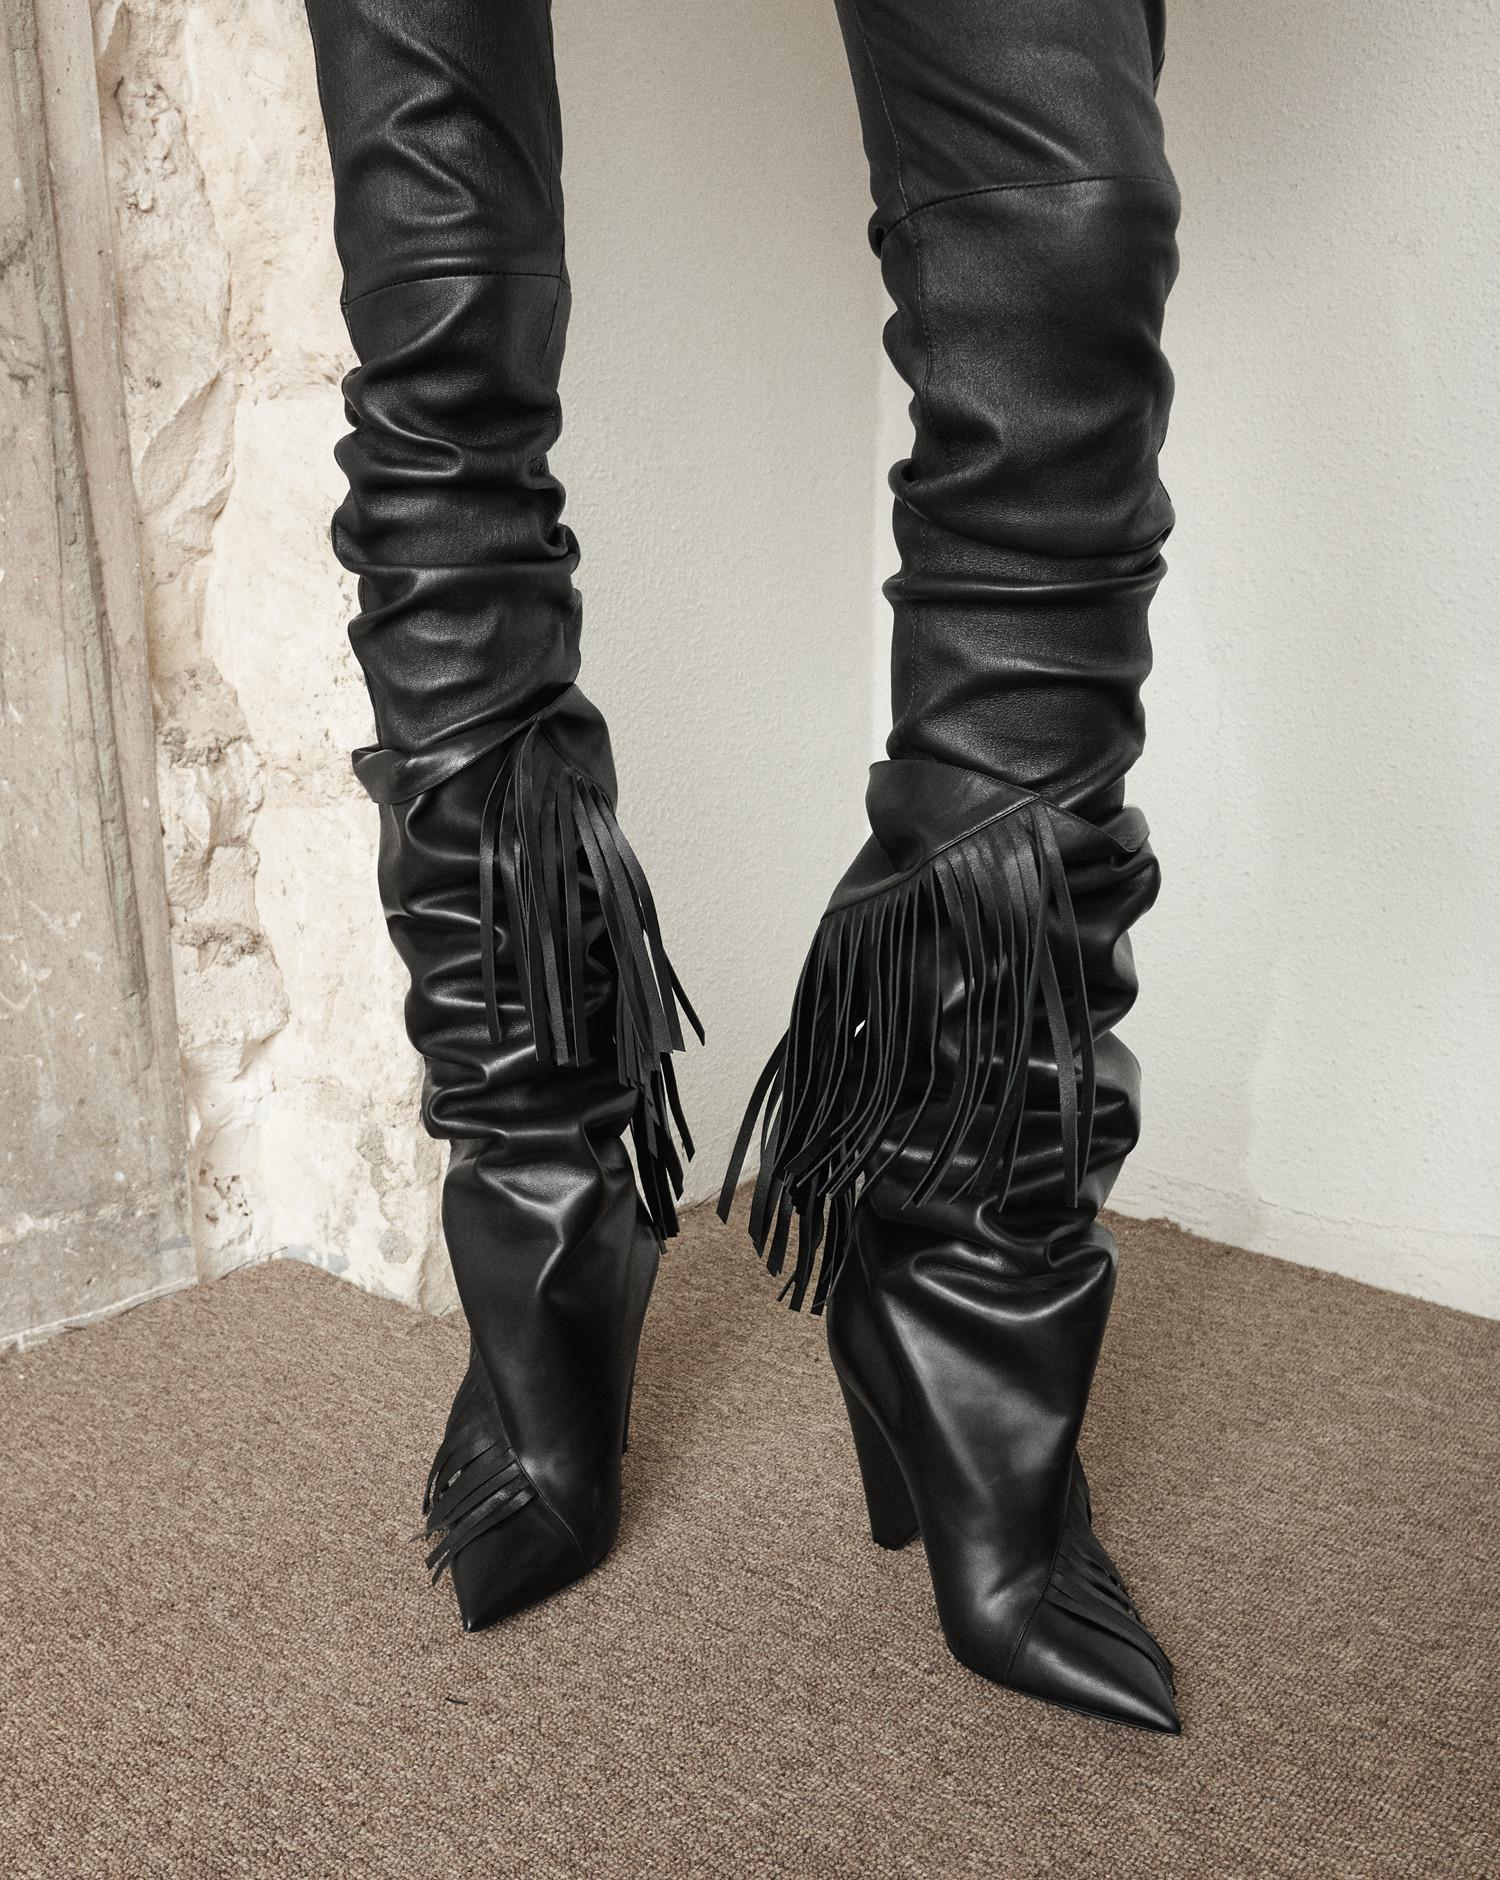 aa854c19a64 Saint Laurent Niki 105 Fringed Knee-high Boot In Black Leather - Lyst